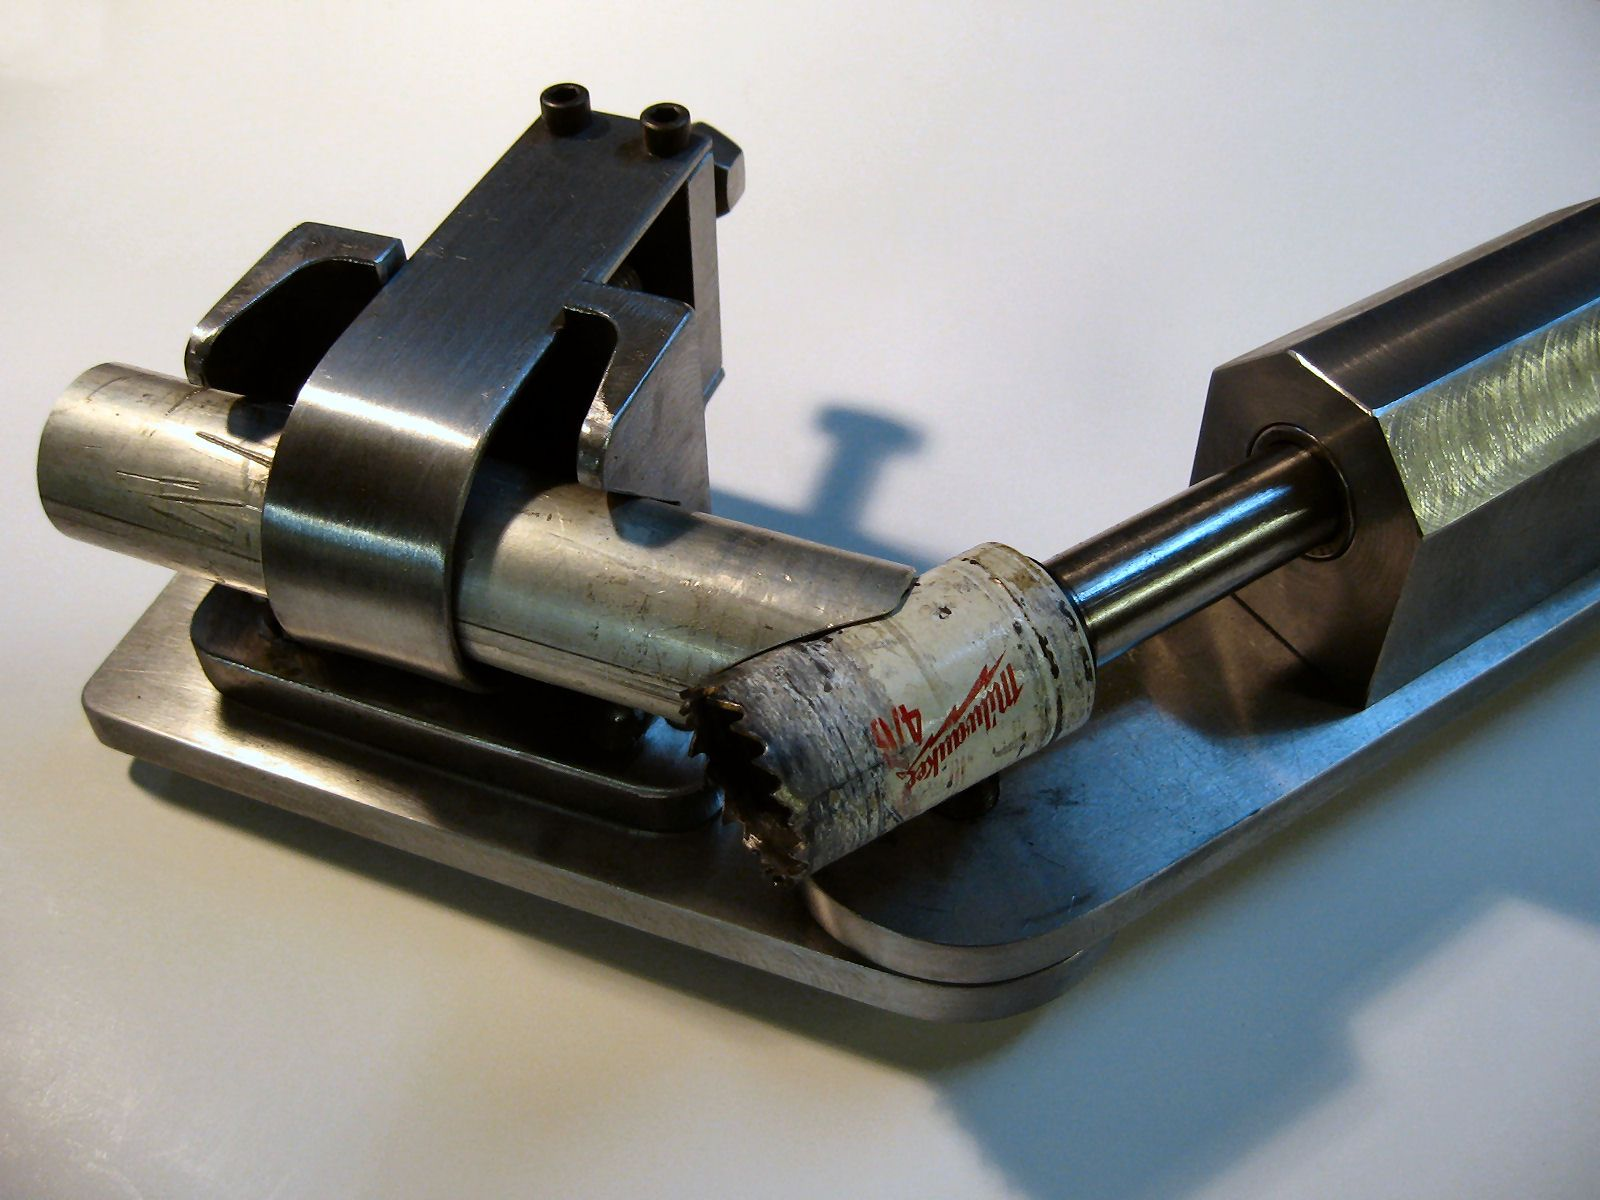 metal fabrication tools list. rorty #2 notcher www.rorty.net metal fabrication tools list